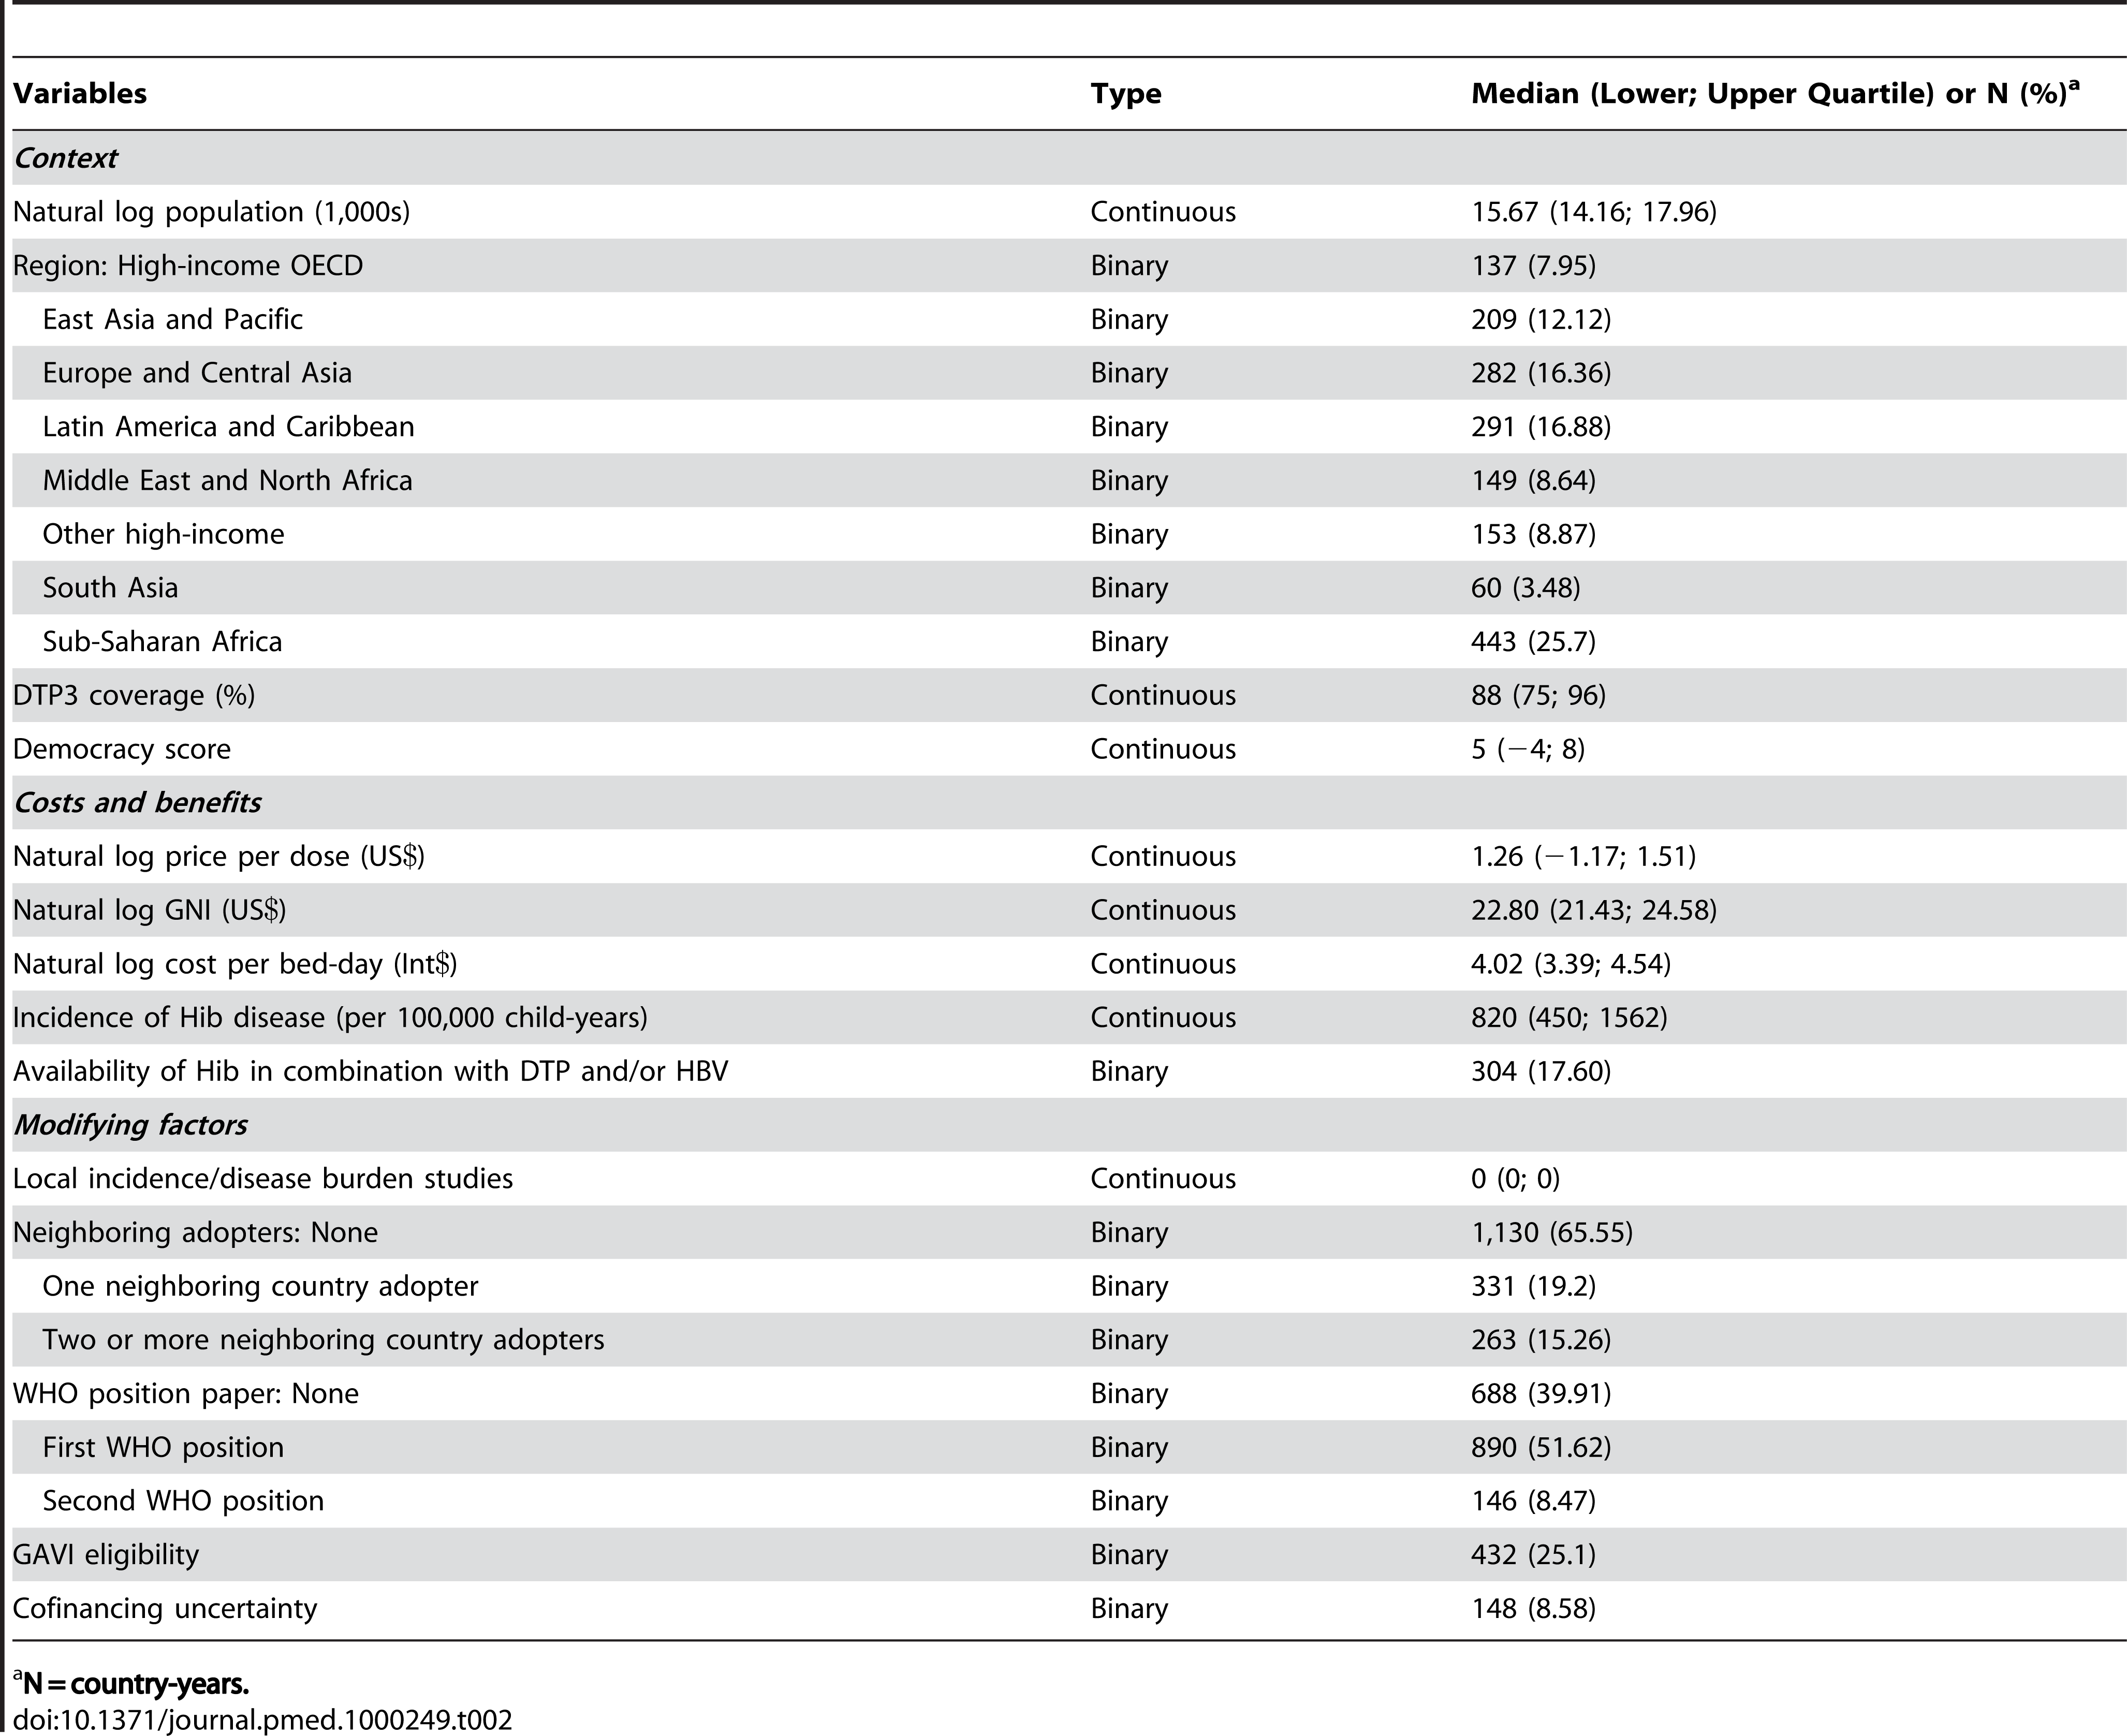 Summary statistics of included independent variables.